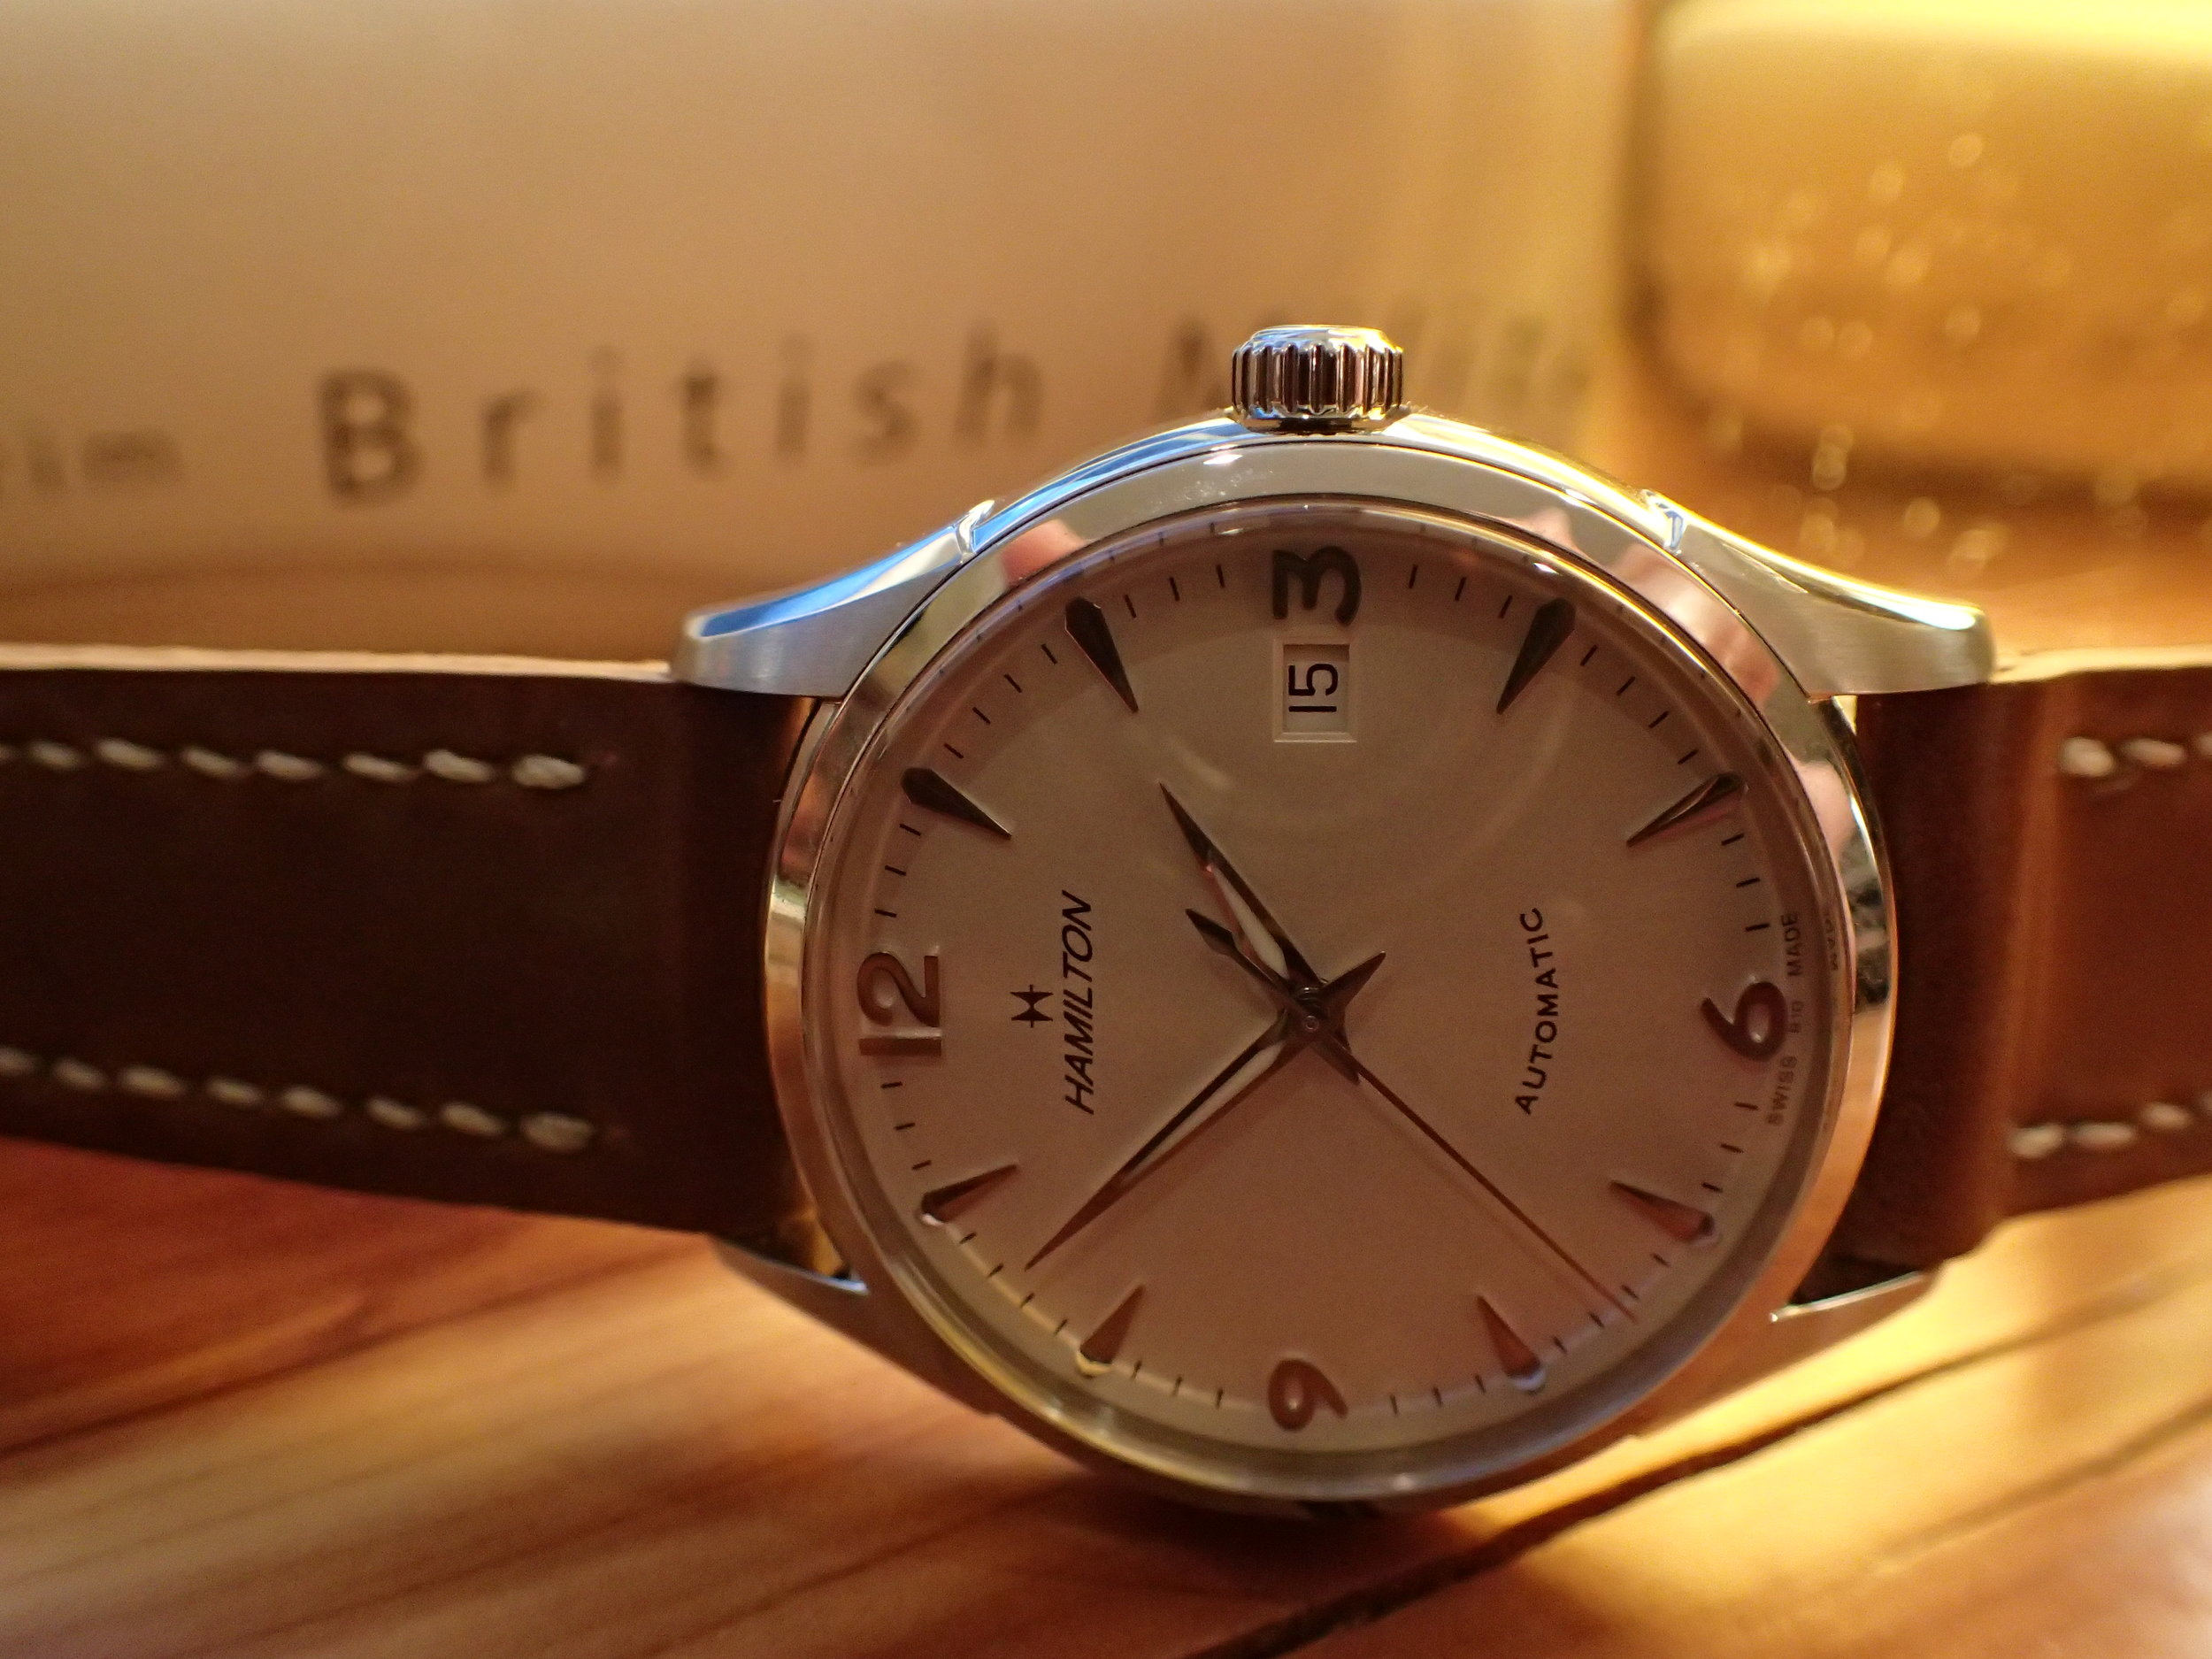 In 38 mm size, the Thin-O-Matic's date window is subtle enough.